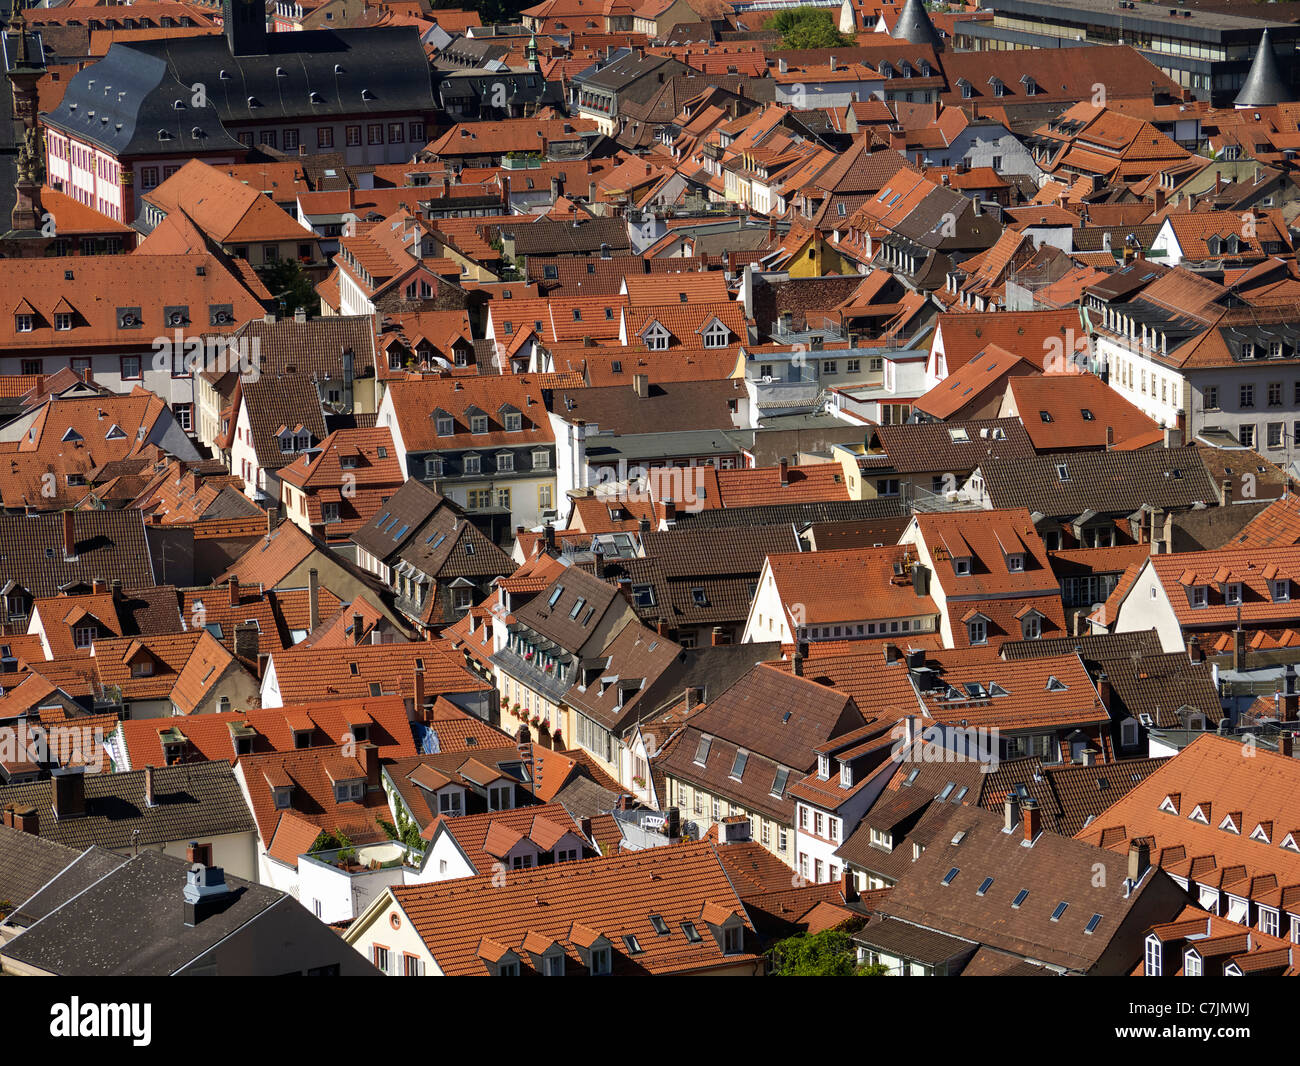 View of rooftops in historic old town of City of Heidelberg in Baden-Wurttemberg Germany - Stock Image